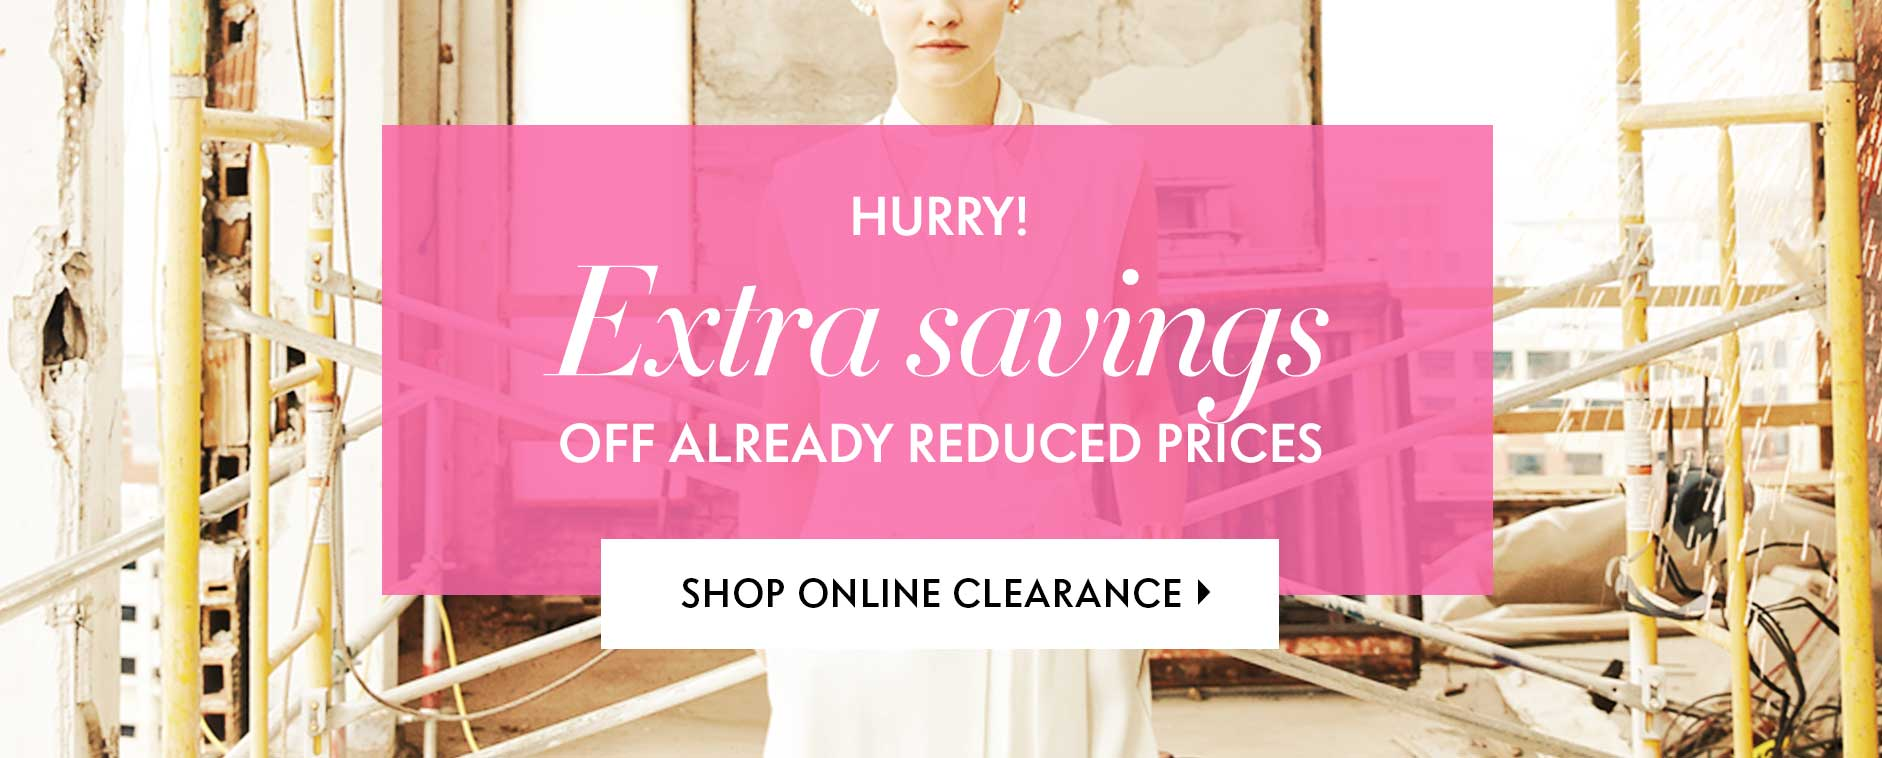 Hurry! Extra savings off already reduced prices